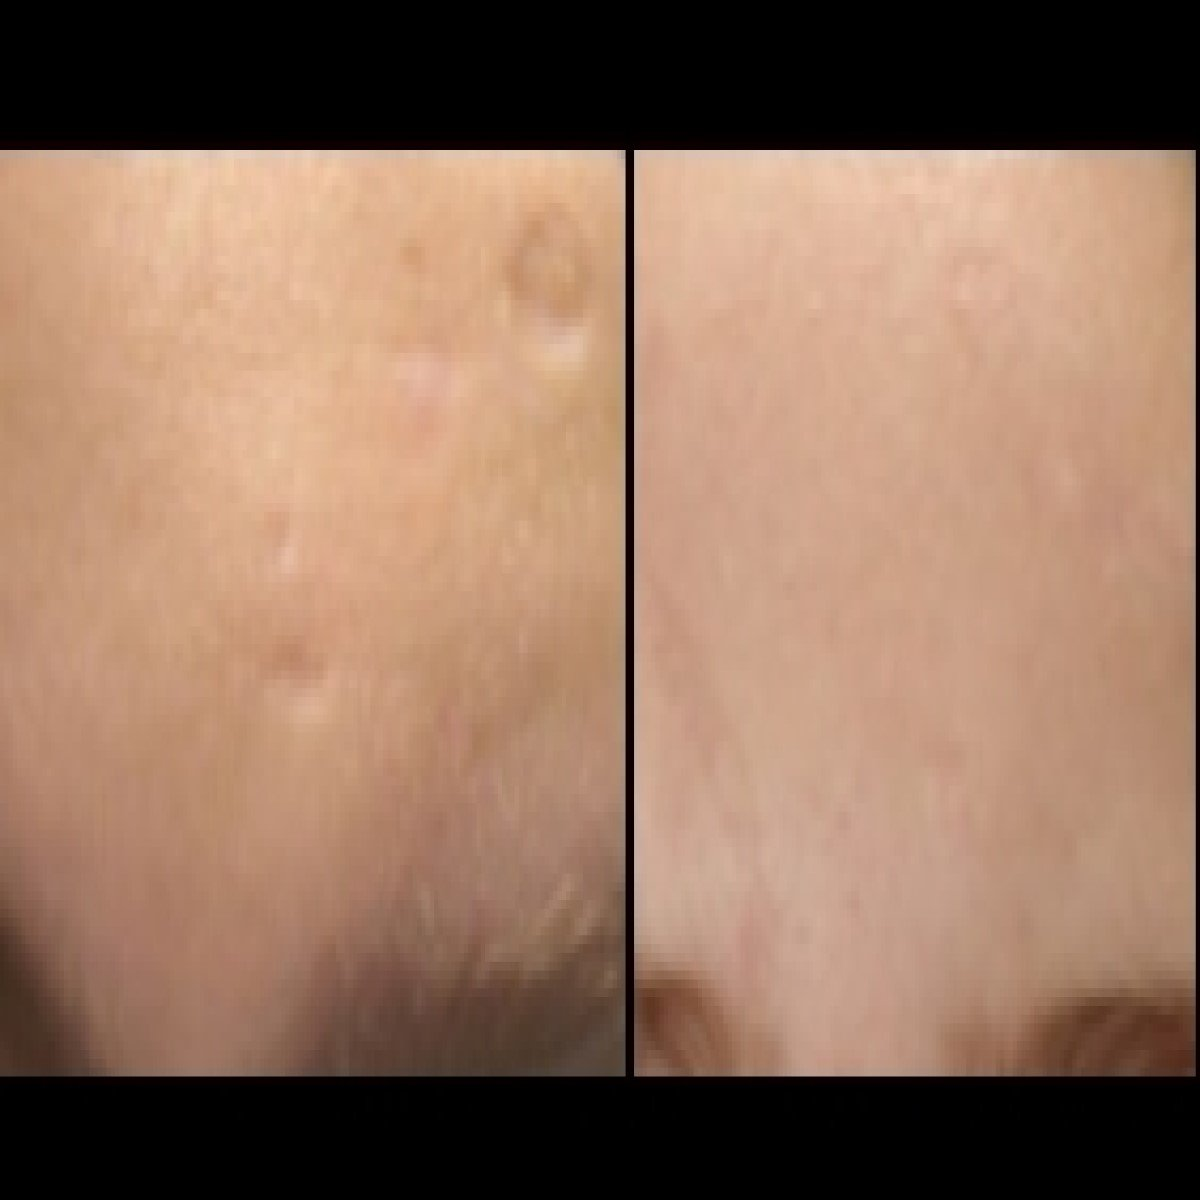 Bellafill fo Acne scars of forehead before and after